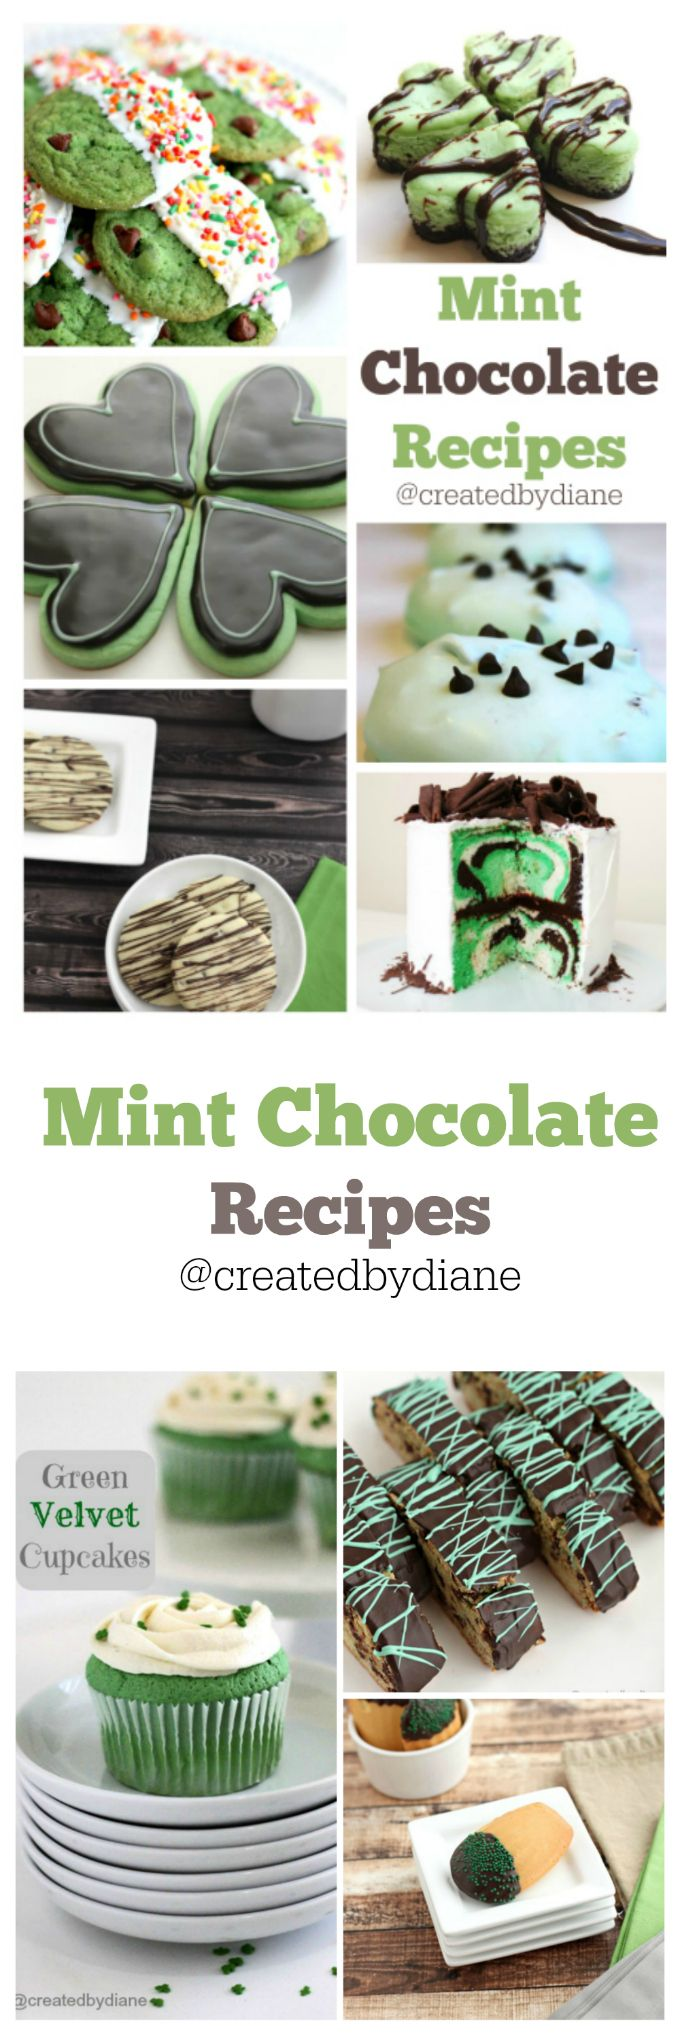 mint and chocolate a delicious flavor combination